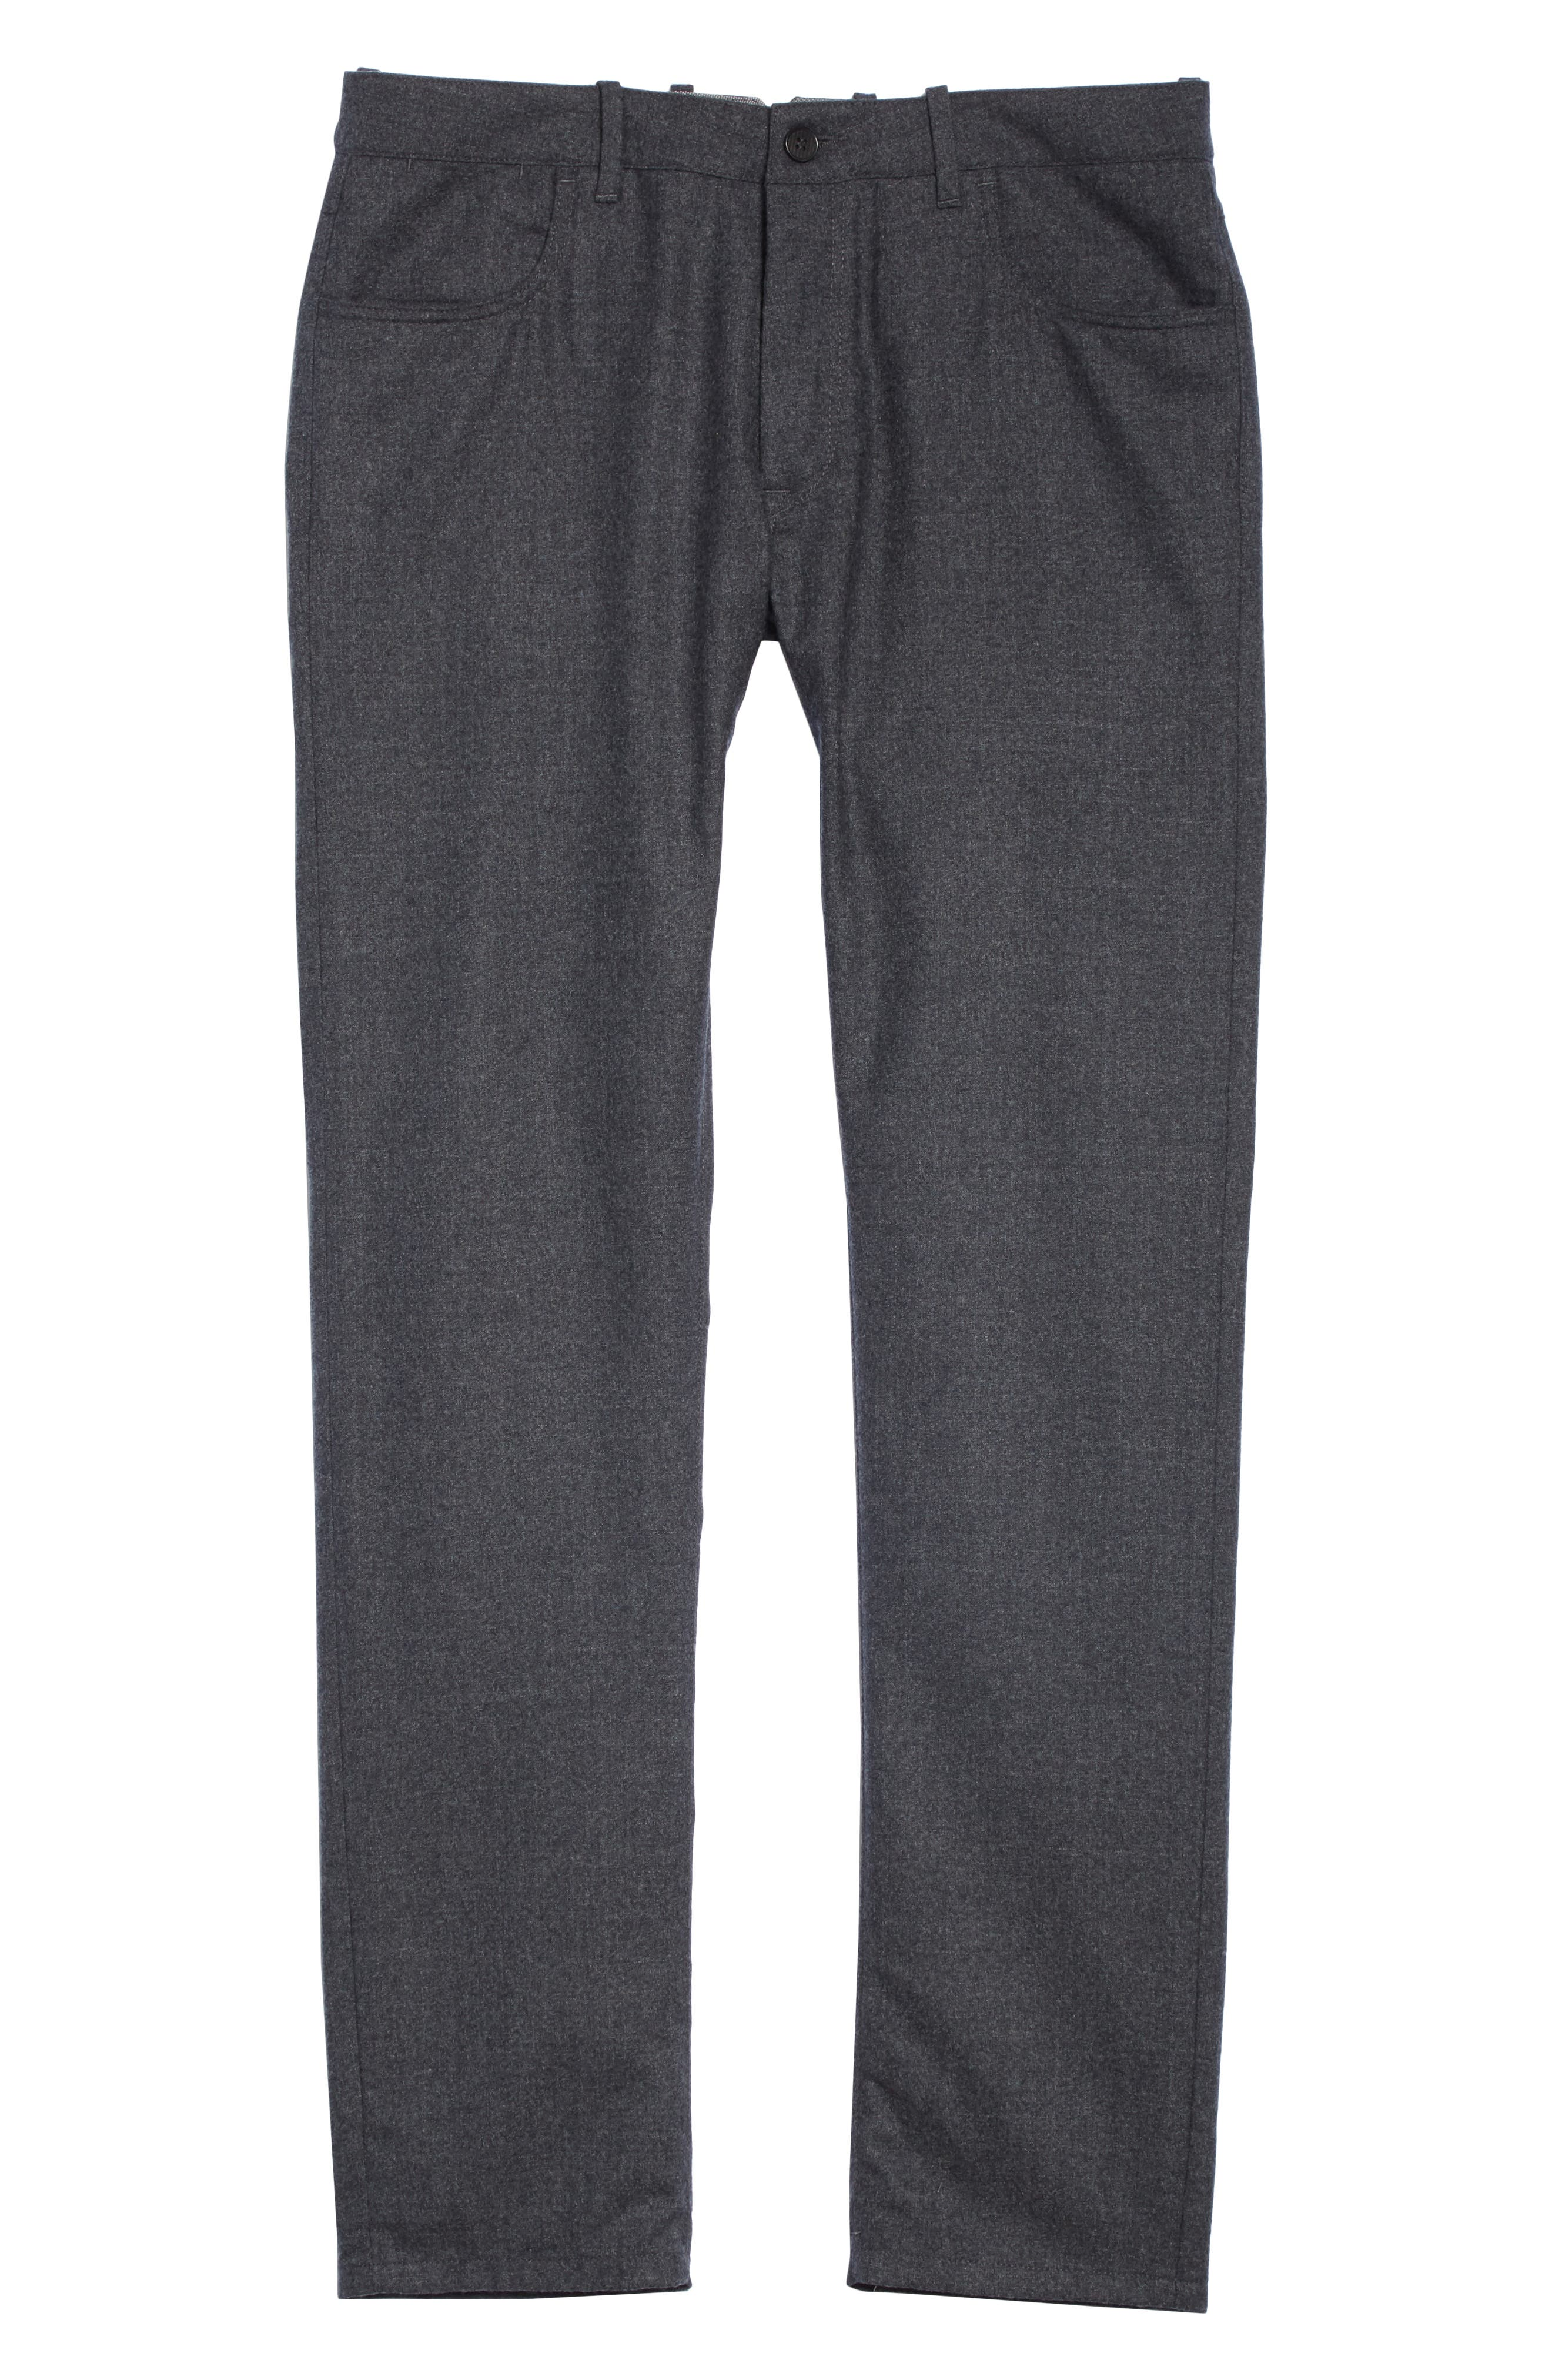 Flat Front Flannel Wool Five-Pocket Trousers,                             Alternate thumbnail 6, color,                             CHARCOAL